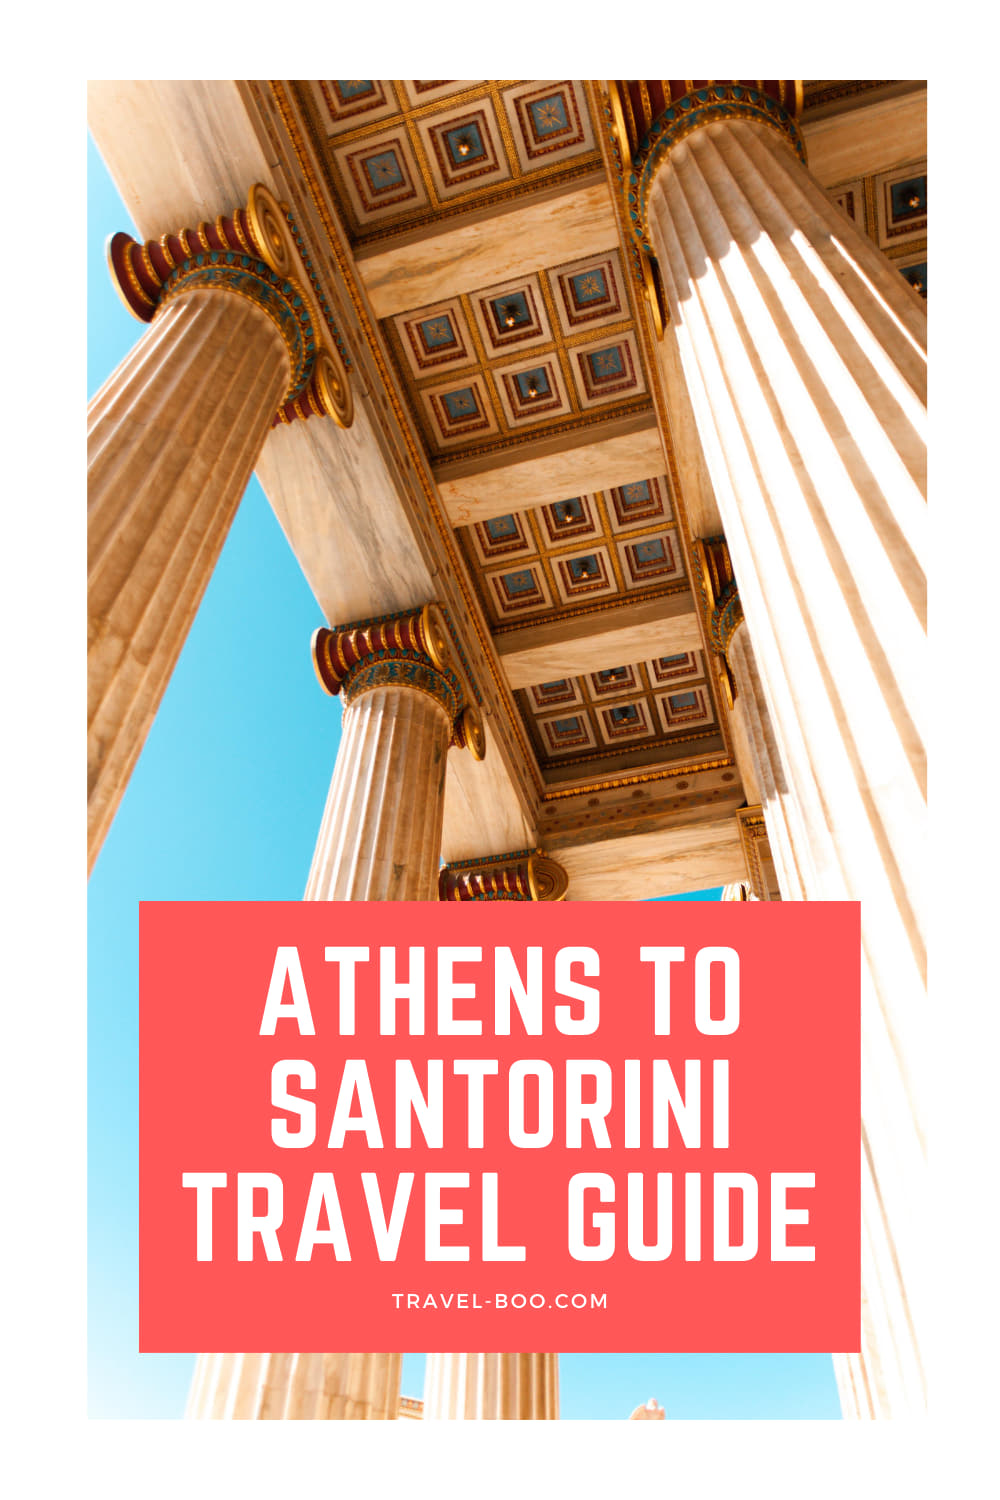 A Complete Travel Guide on How to get from Athens to Santorini. Athens Travel Guide, Santorini Travel Guide, Athens Itinerary, Santorini Itinerary, Greece Travel Islands, Greece Vacations, Santorini Greece, Athens Greece, Greek Islands. #athenstravel #santorinitravel #greecetravel